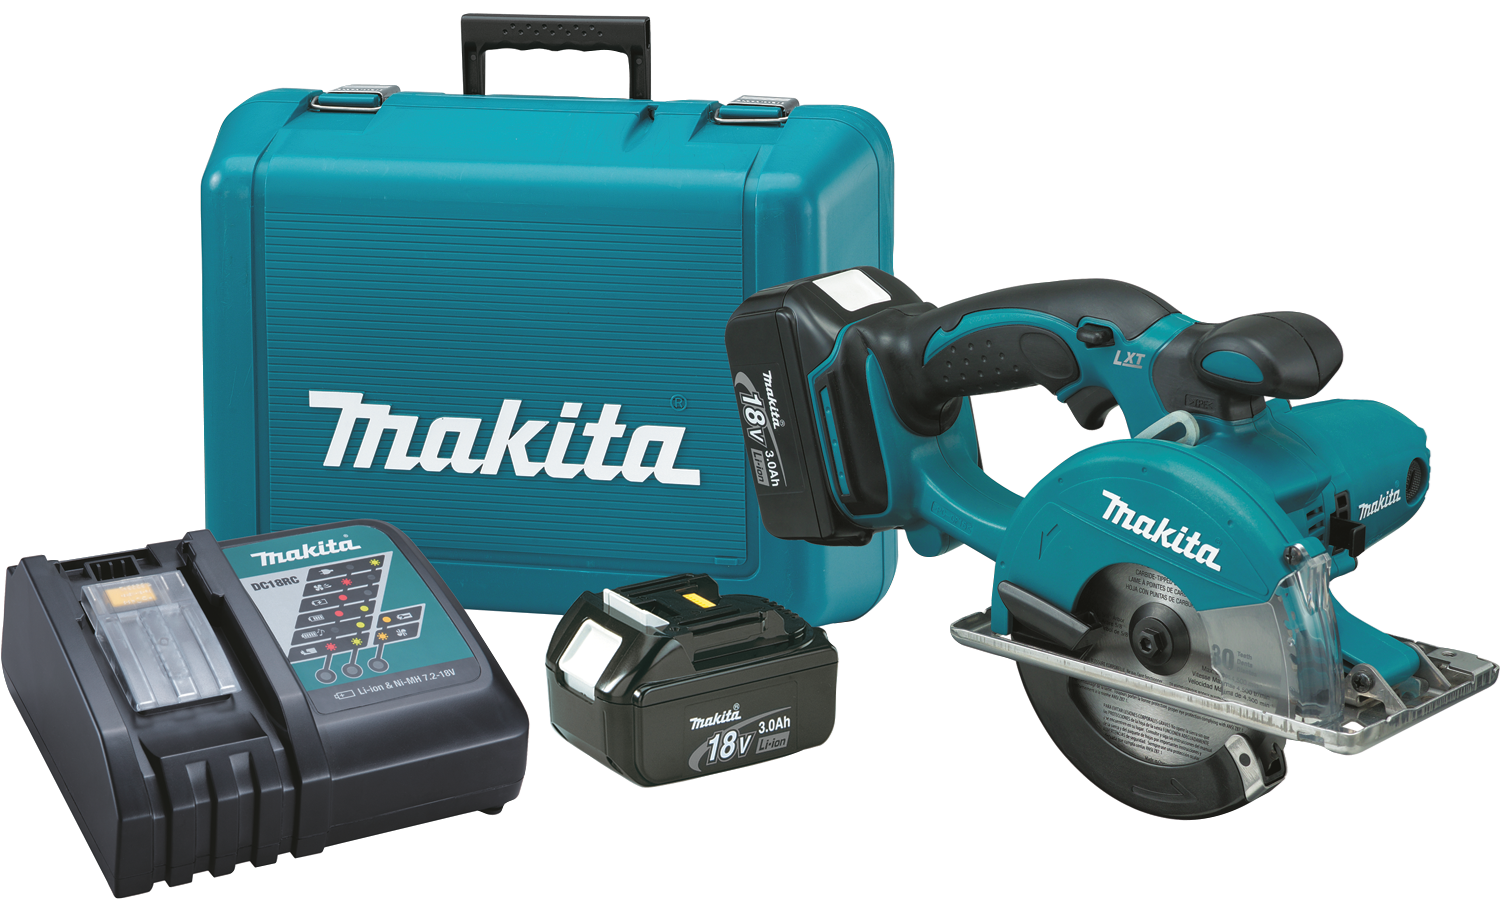 makita dc18rc instruction manual